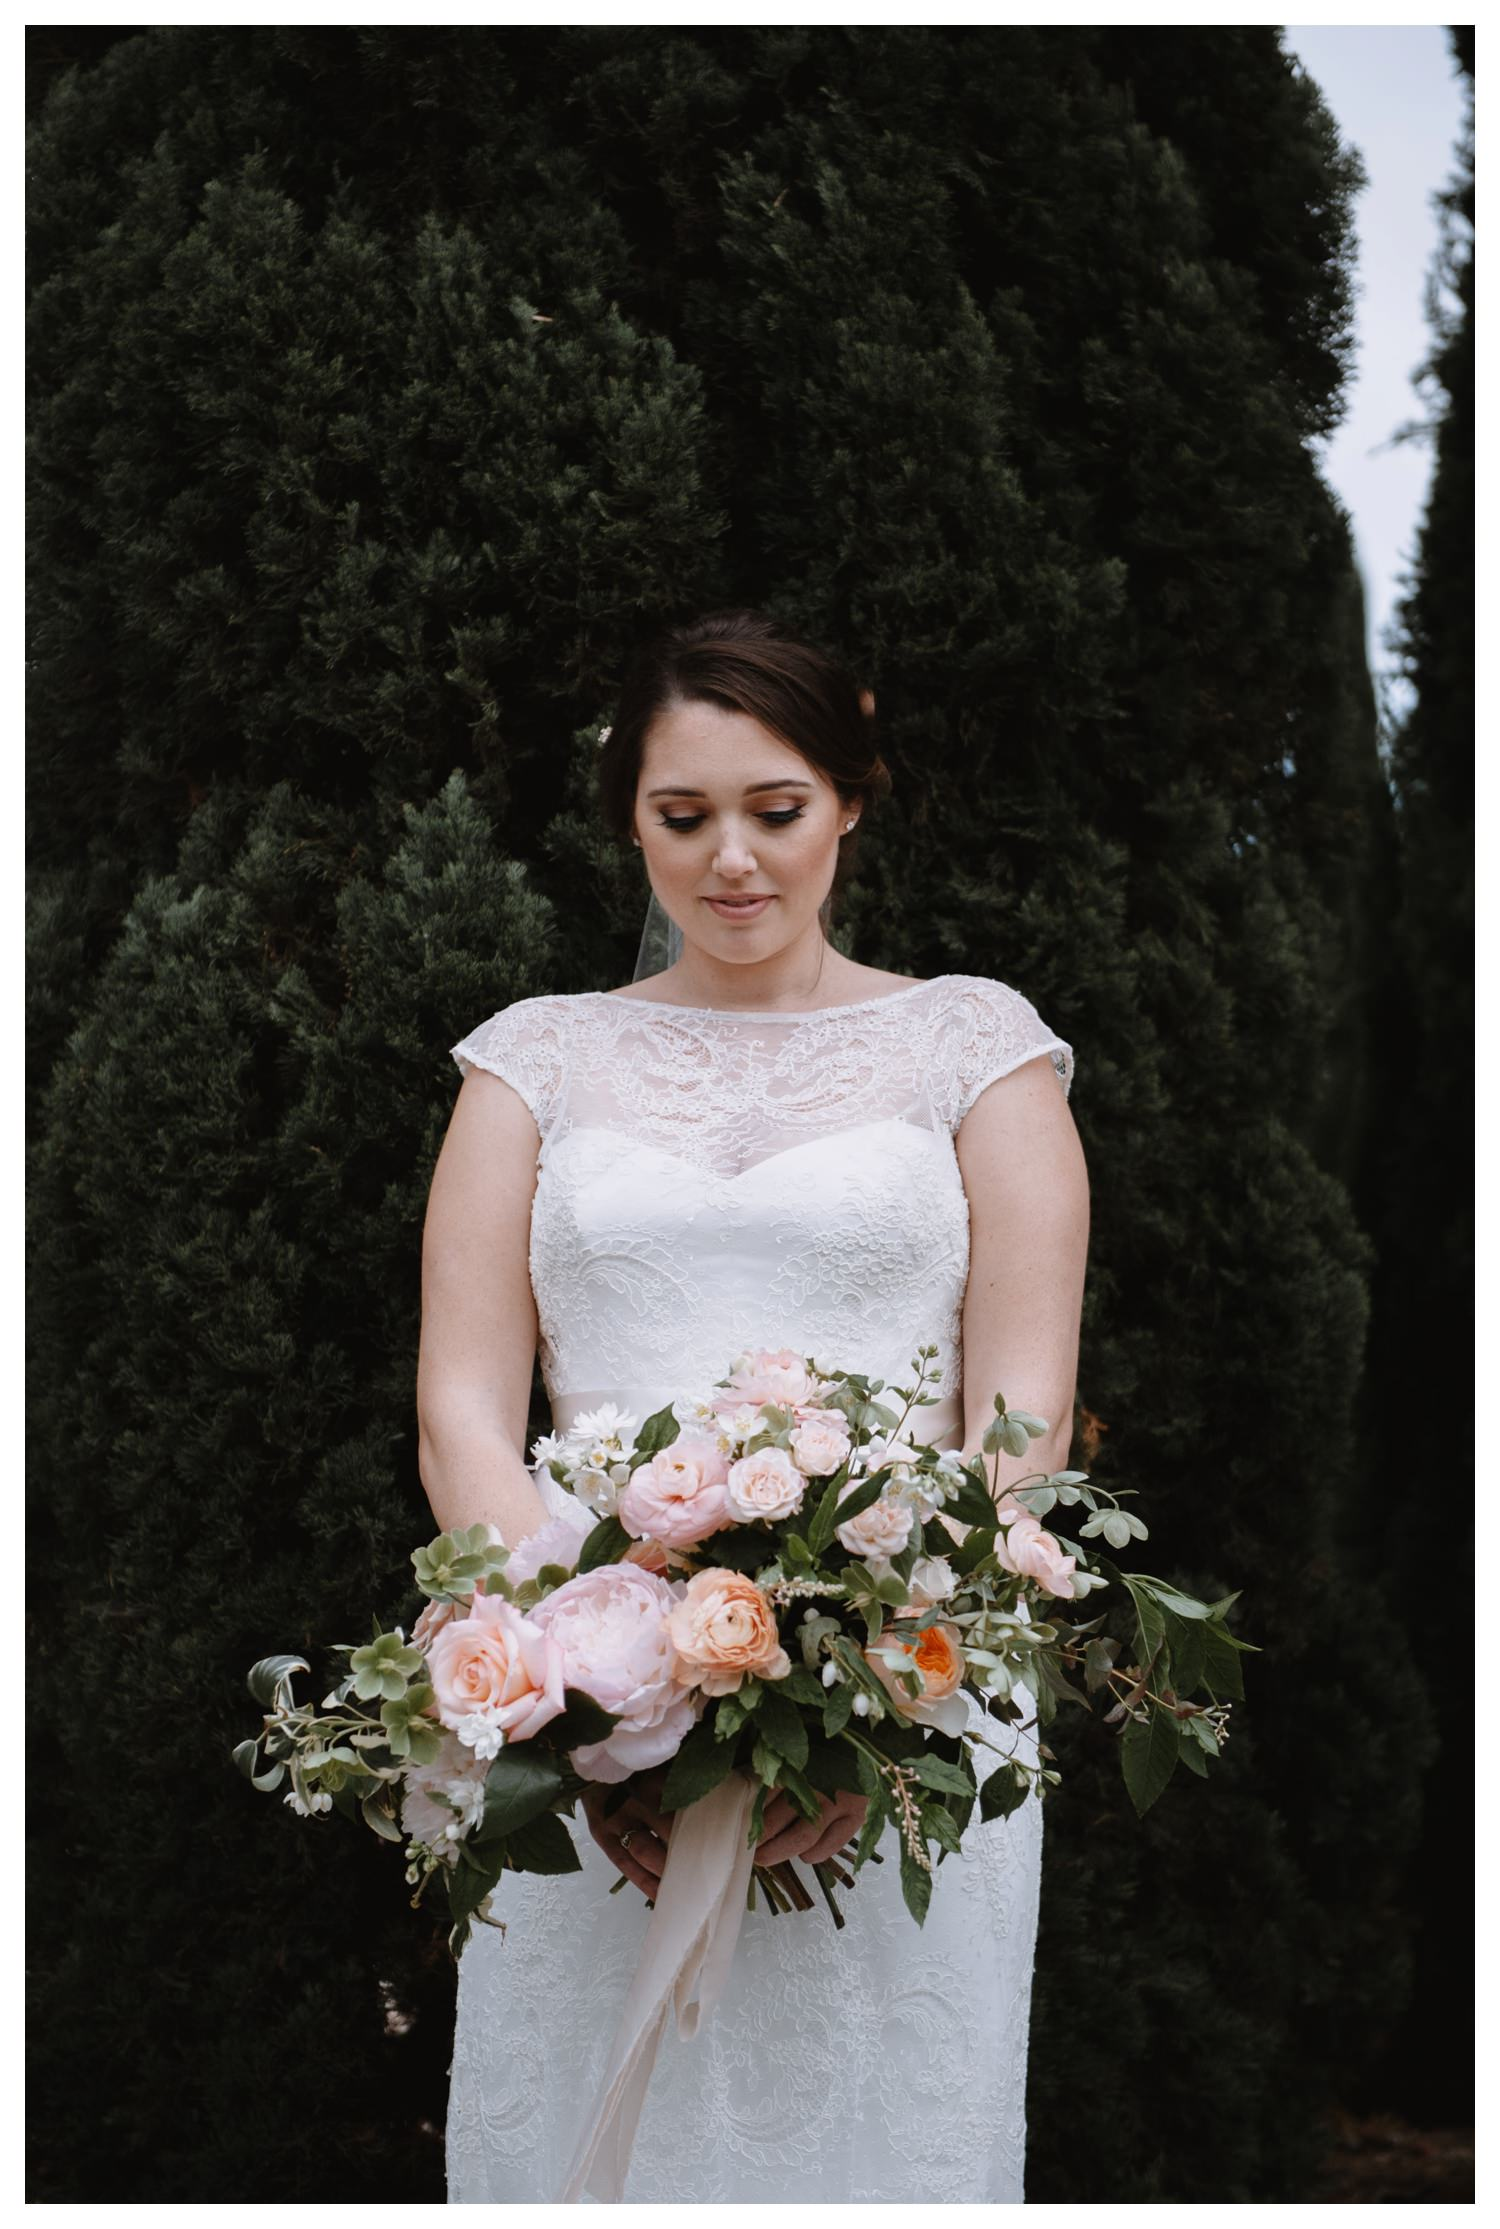 Beautiful pale pastel colors surround a bride on her wedding day